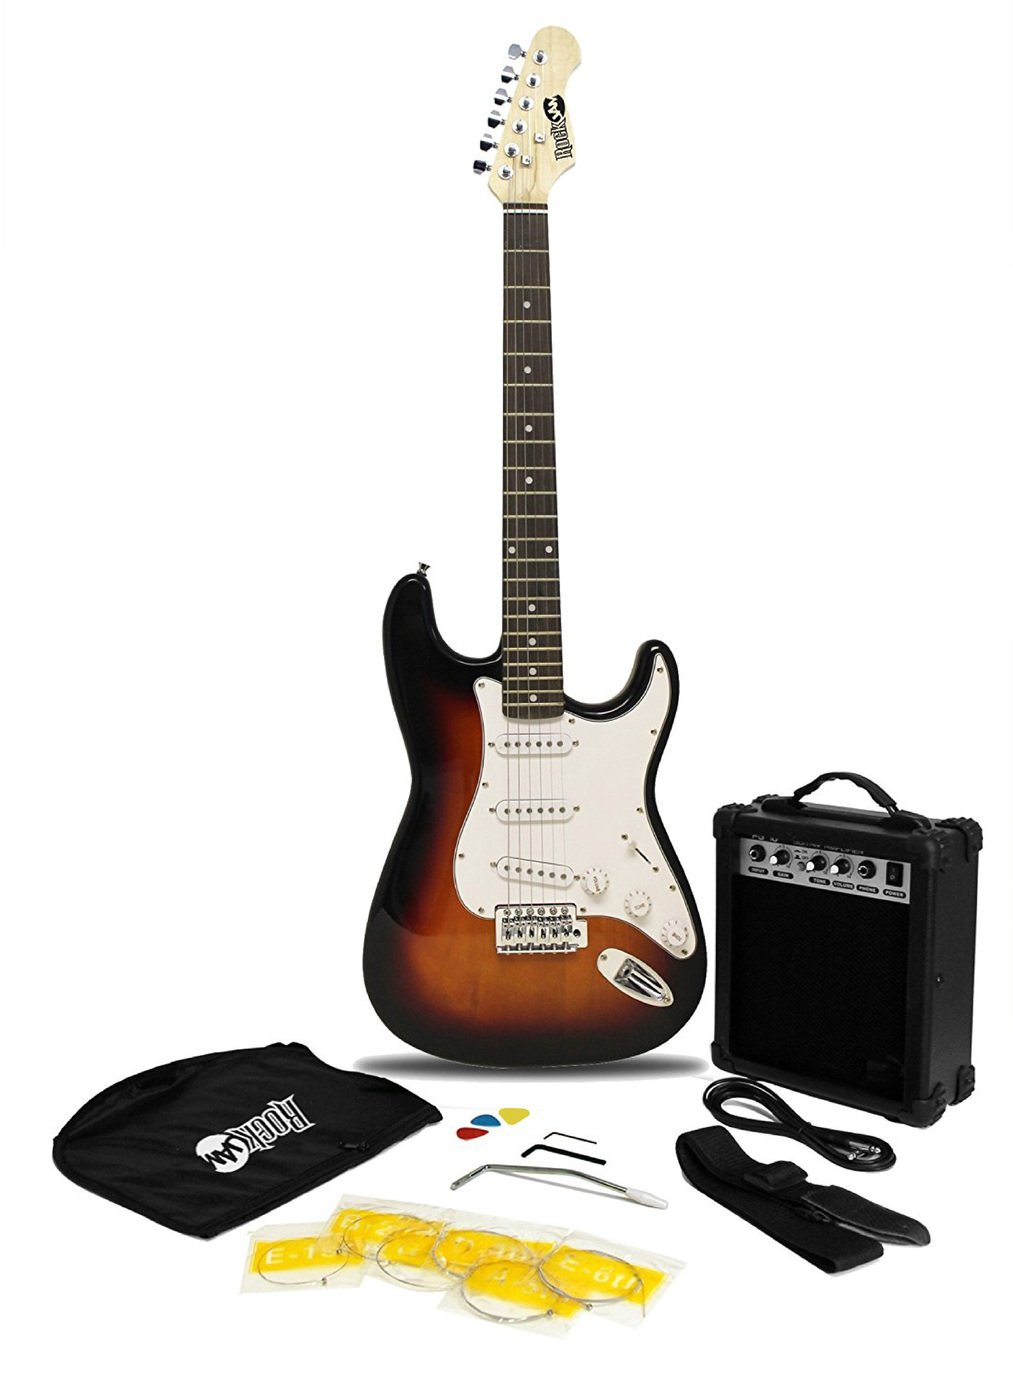 RockJam Full Size Electric Guitar Kit with Amp - Sunburst